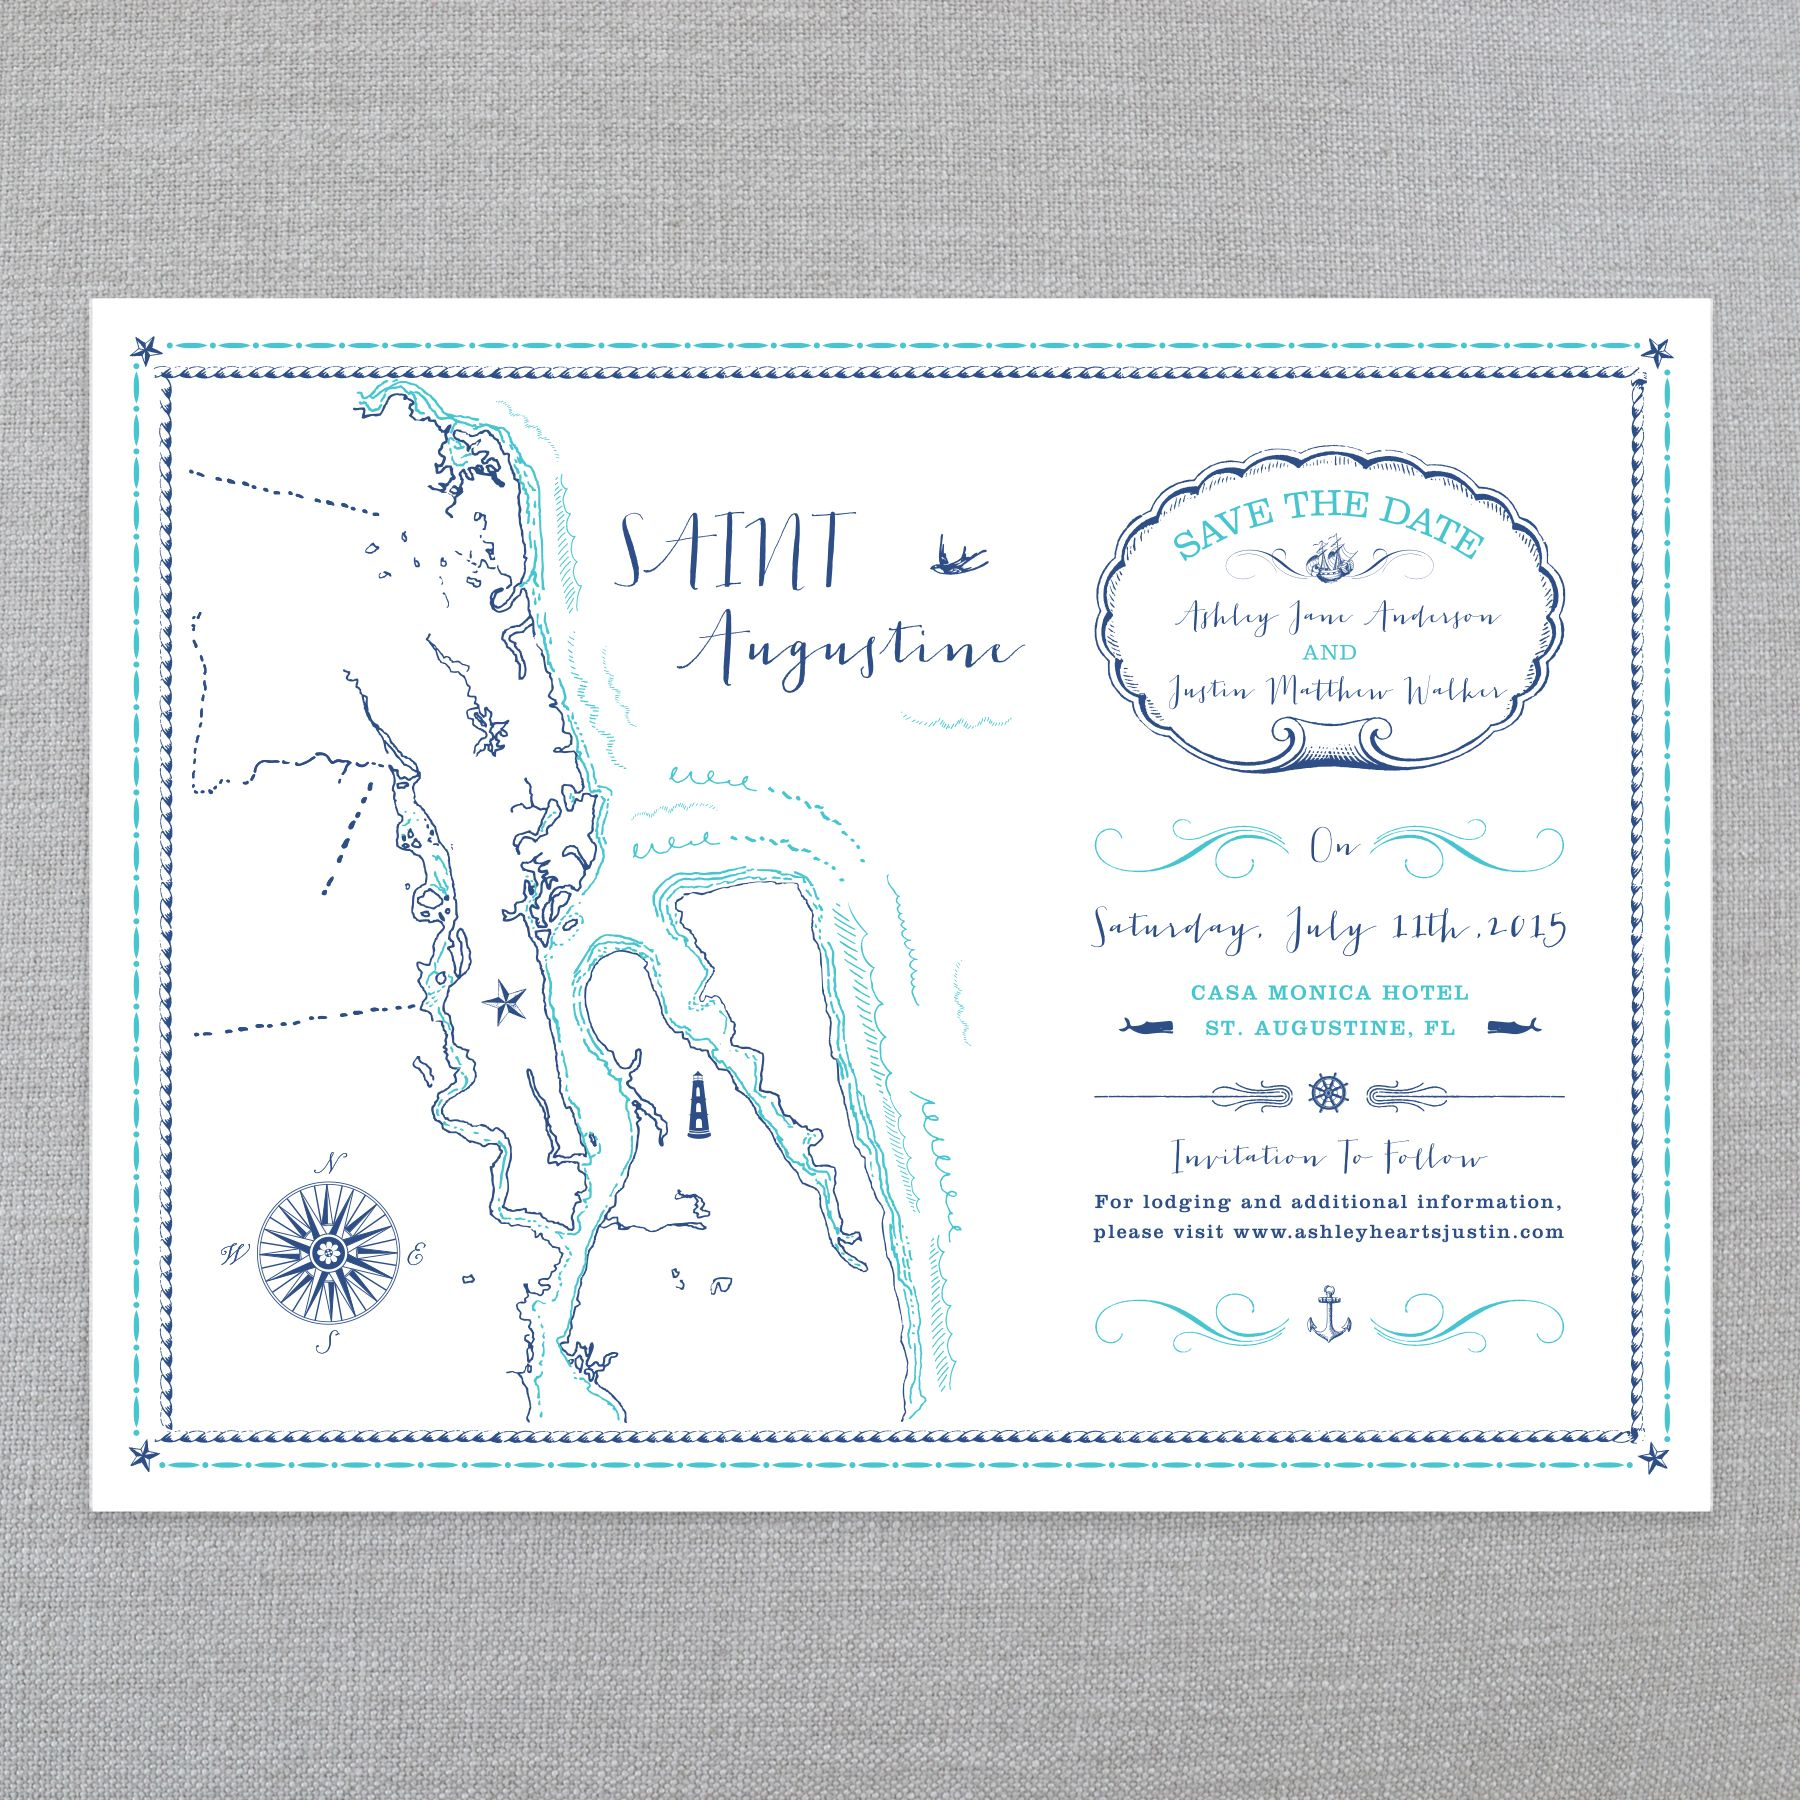 THE ILLUSTRATED ISLANDS • SAVE THE DATES • ST AUGUSTINE, FL: The Ice Cream Social Illustrated Island series is a beautiful tri-fold map inspired Save The Date, perfect for any coastal themed wedding! Available in many other locations.